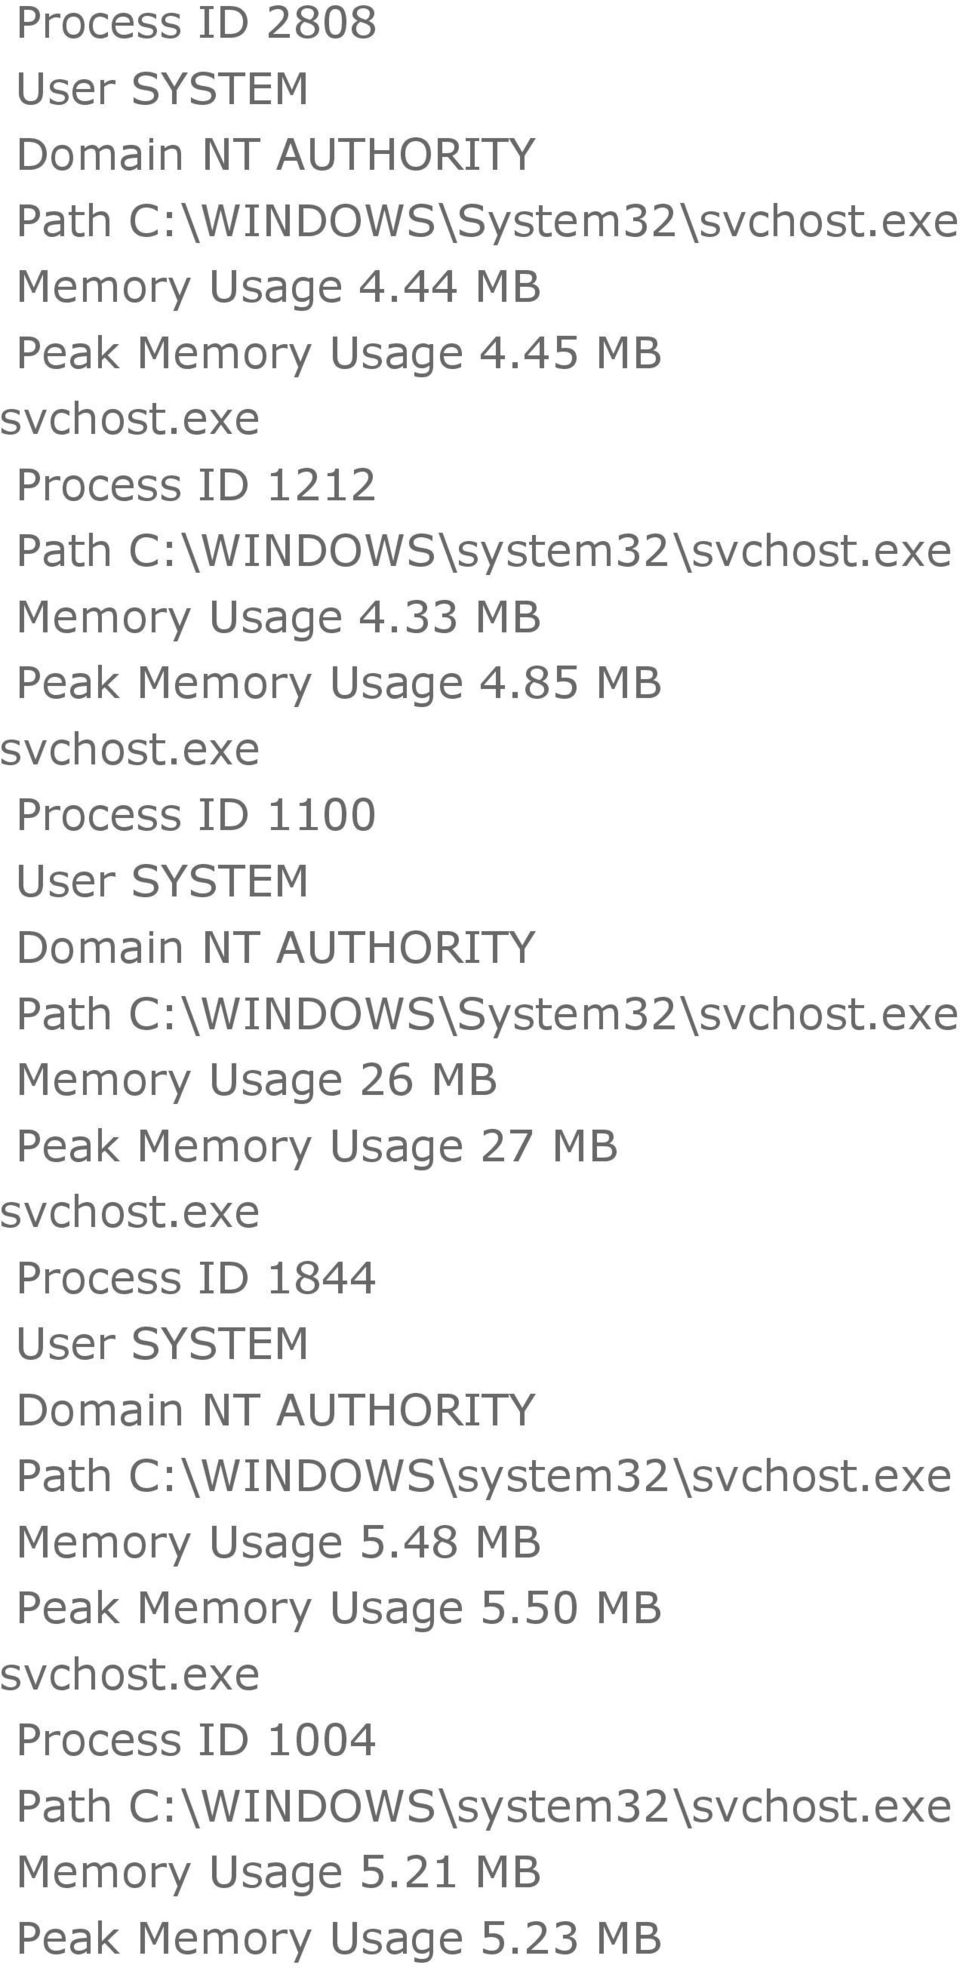 exe Process ID 1100 Path C:\WINDOWS\System32\svchost.exe Memory Usage 26 MB Peak Memory Usage 27 MB svchost.